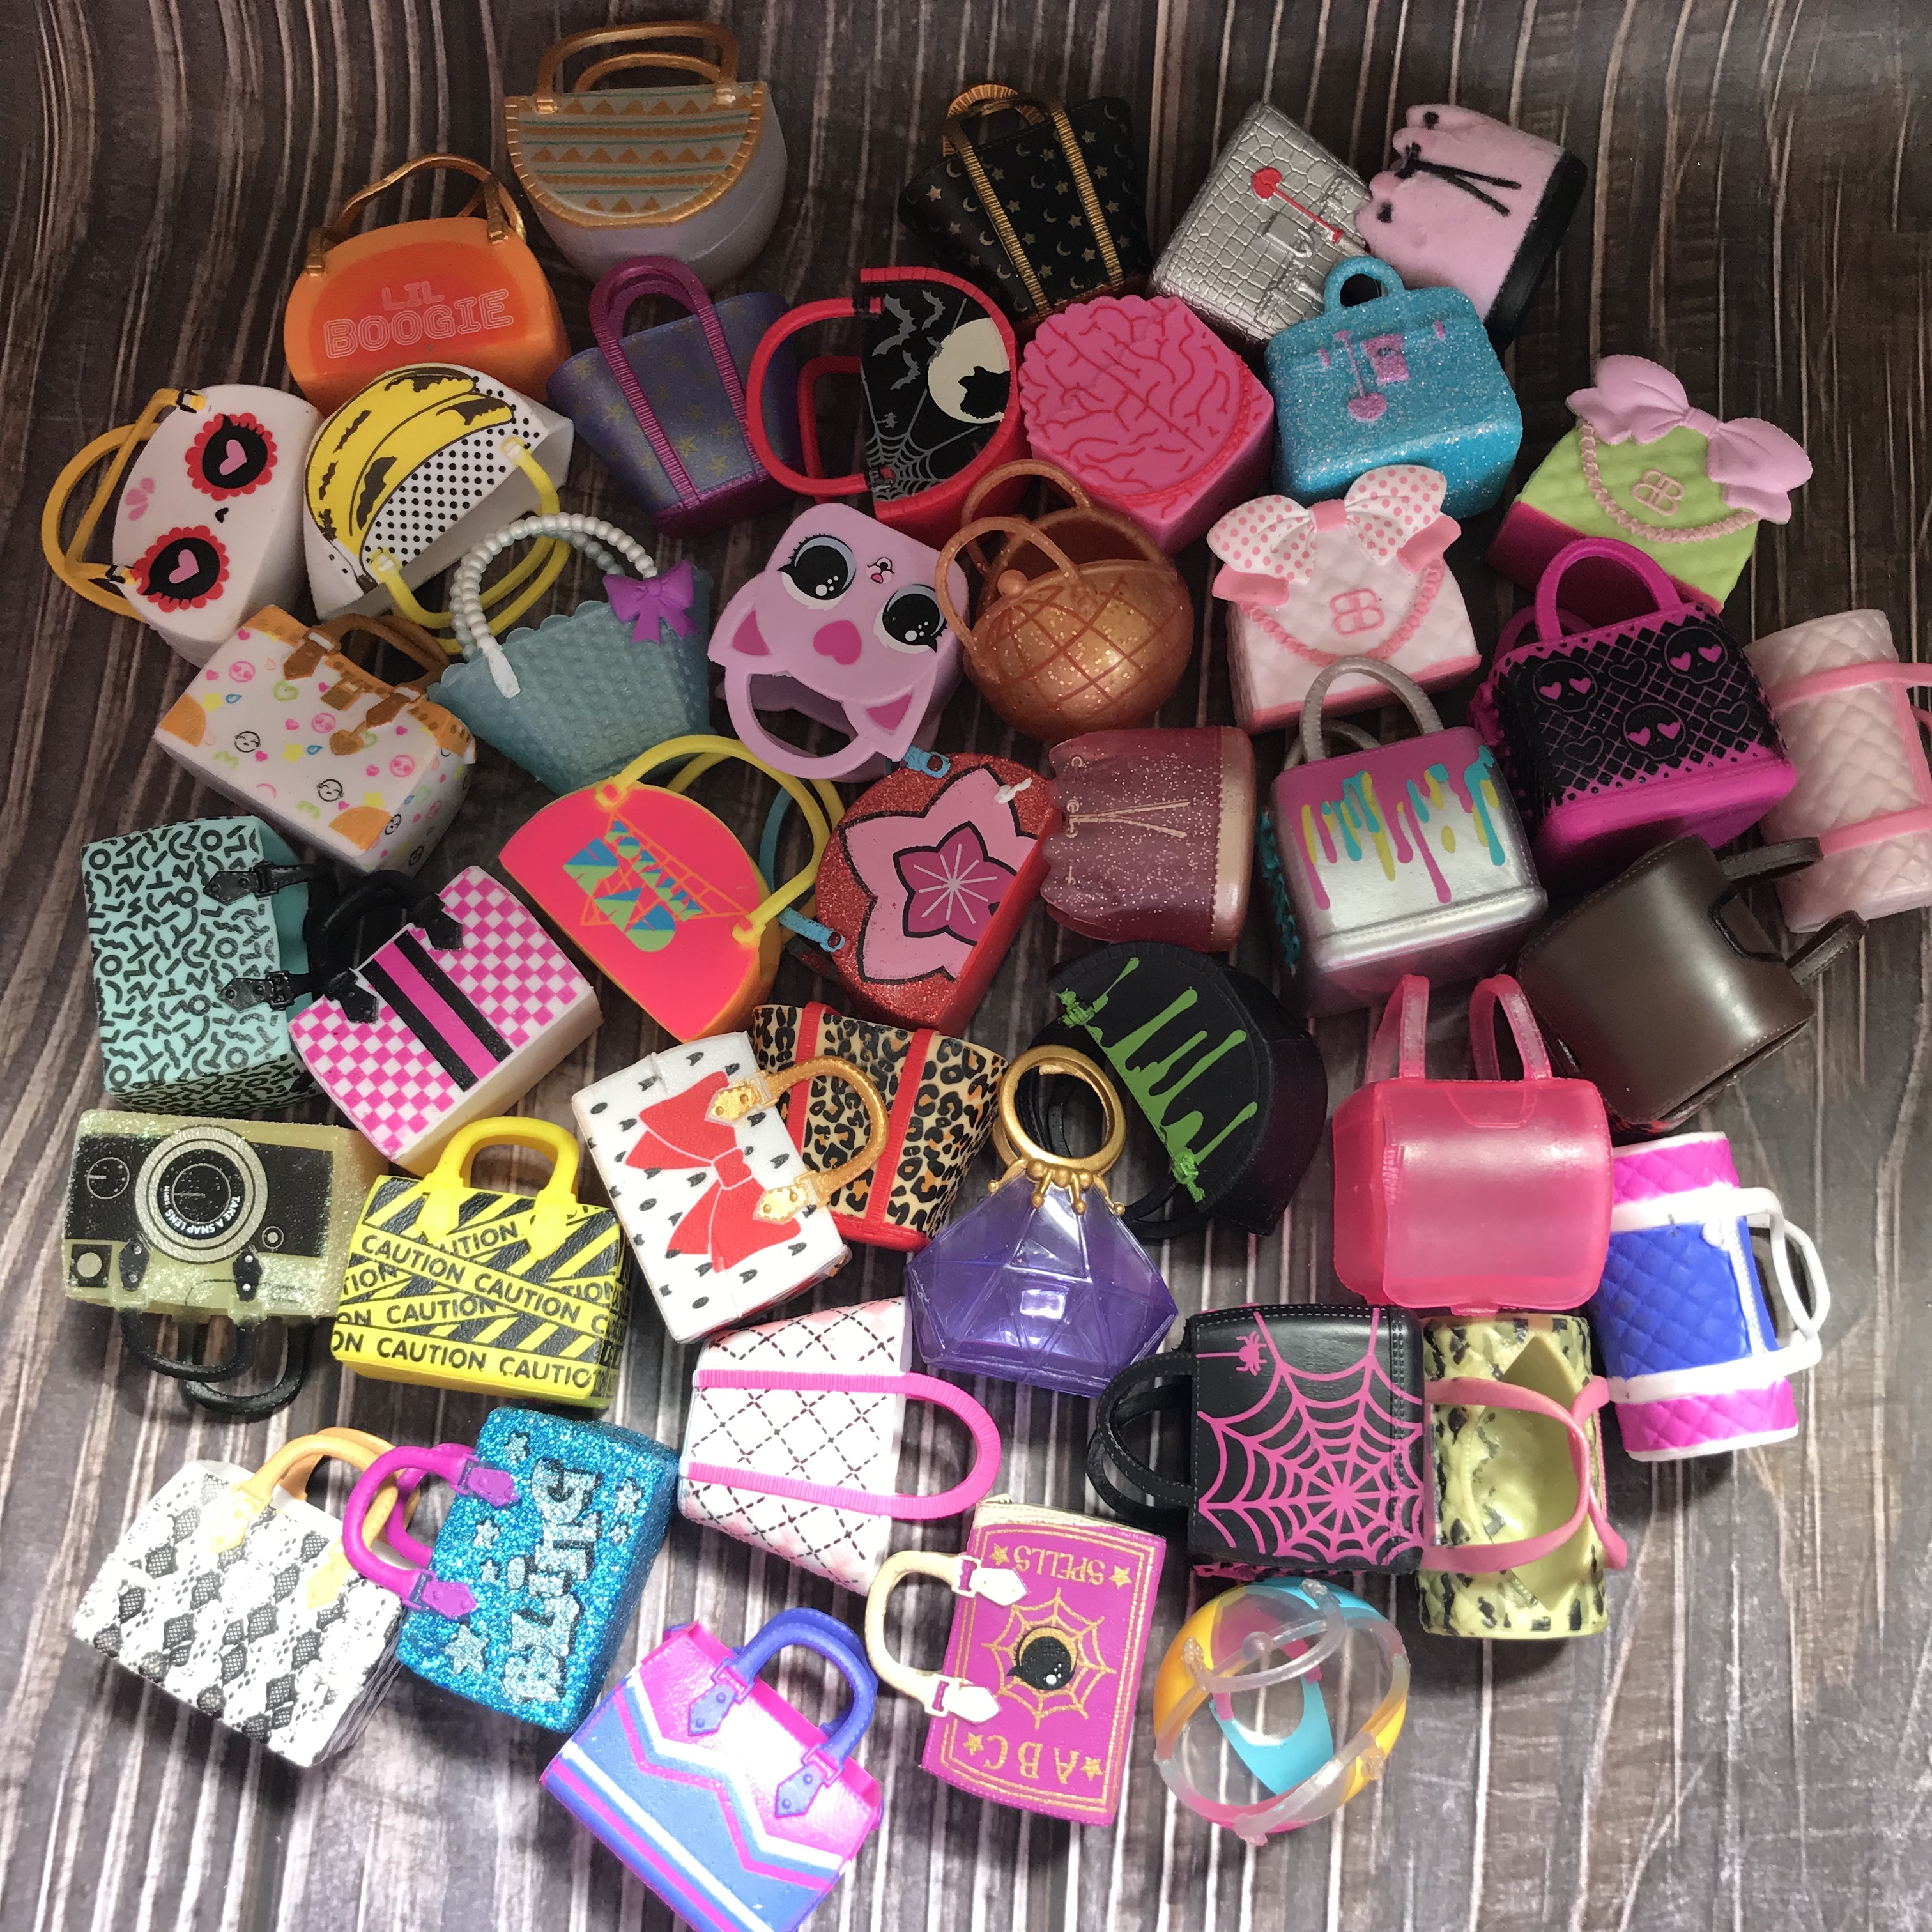 LOL Doll Bag Accessorries Lol Accessories On Sale Original LOL Dolls Collection Drop Shipping Random Delivery